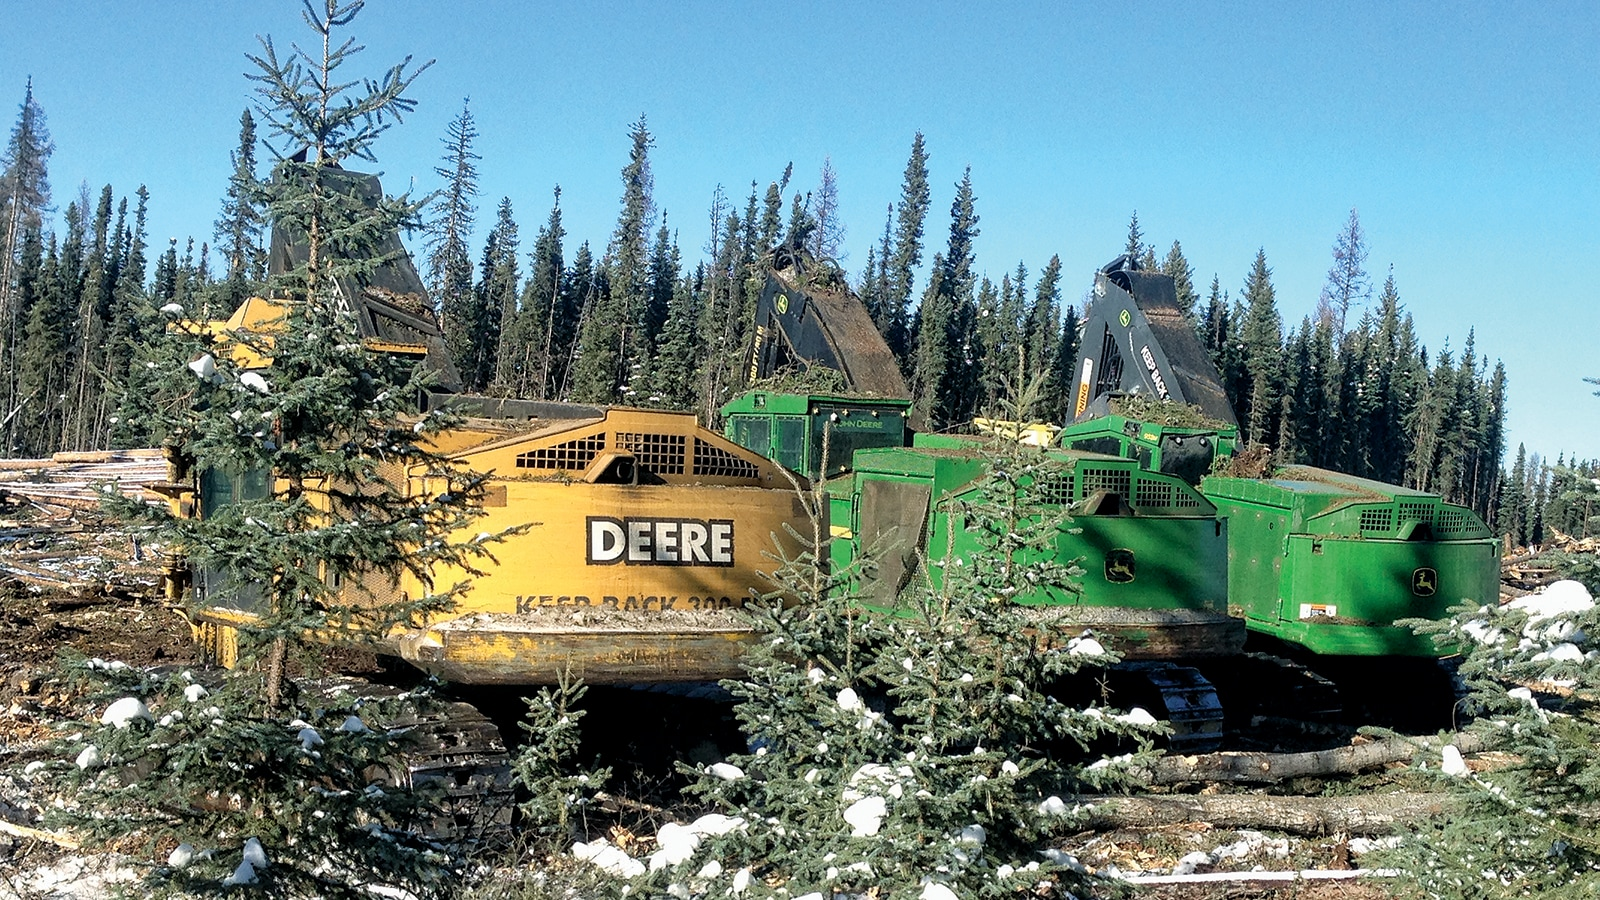 The backs of a John Deere 953G, 953K, and 953M Feller Bunchers lined up in the woods